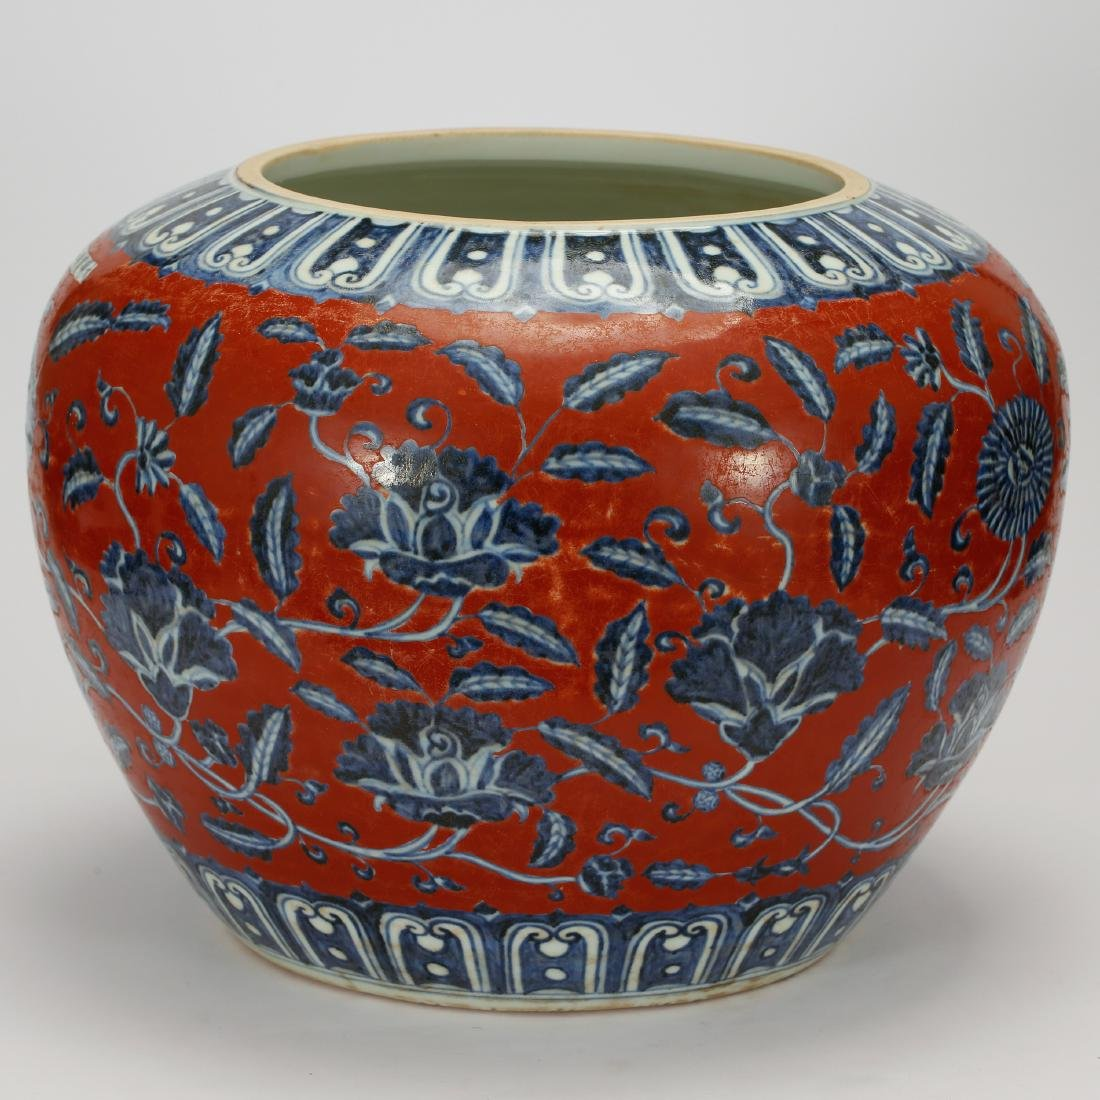 CHINESE BLUE WHITE RED GROUND PORCELAIN JAR - 5